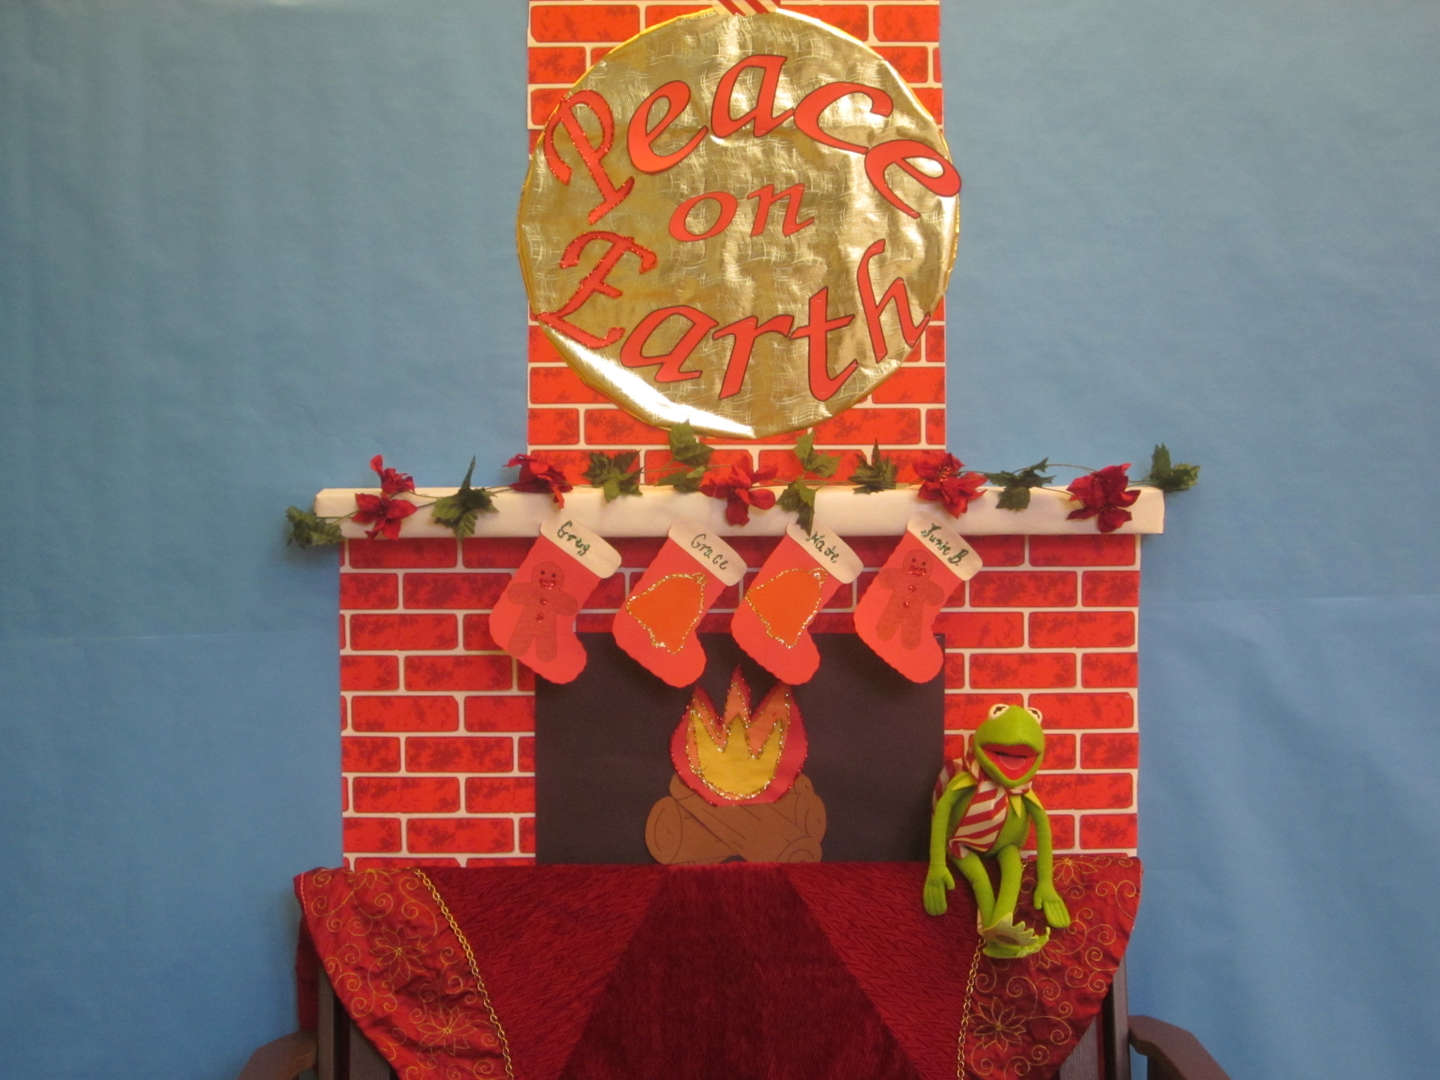 Congratulations to our L!brary for winning our Annual Holiday Bulletin Board Contest.  Good wishes to all for 2017!